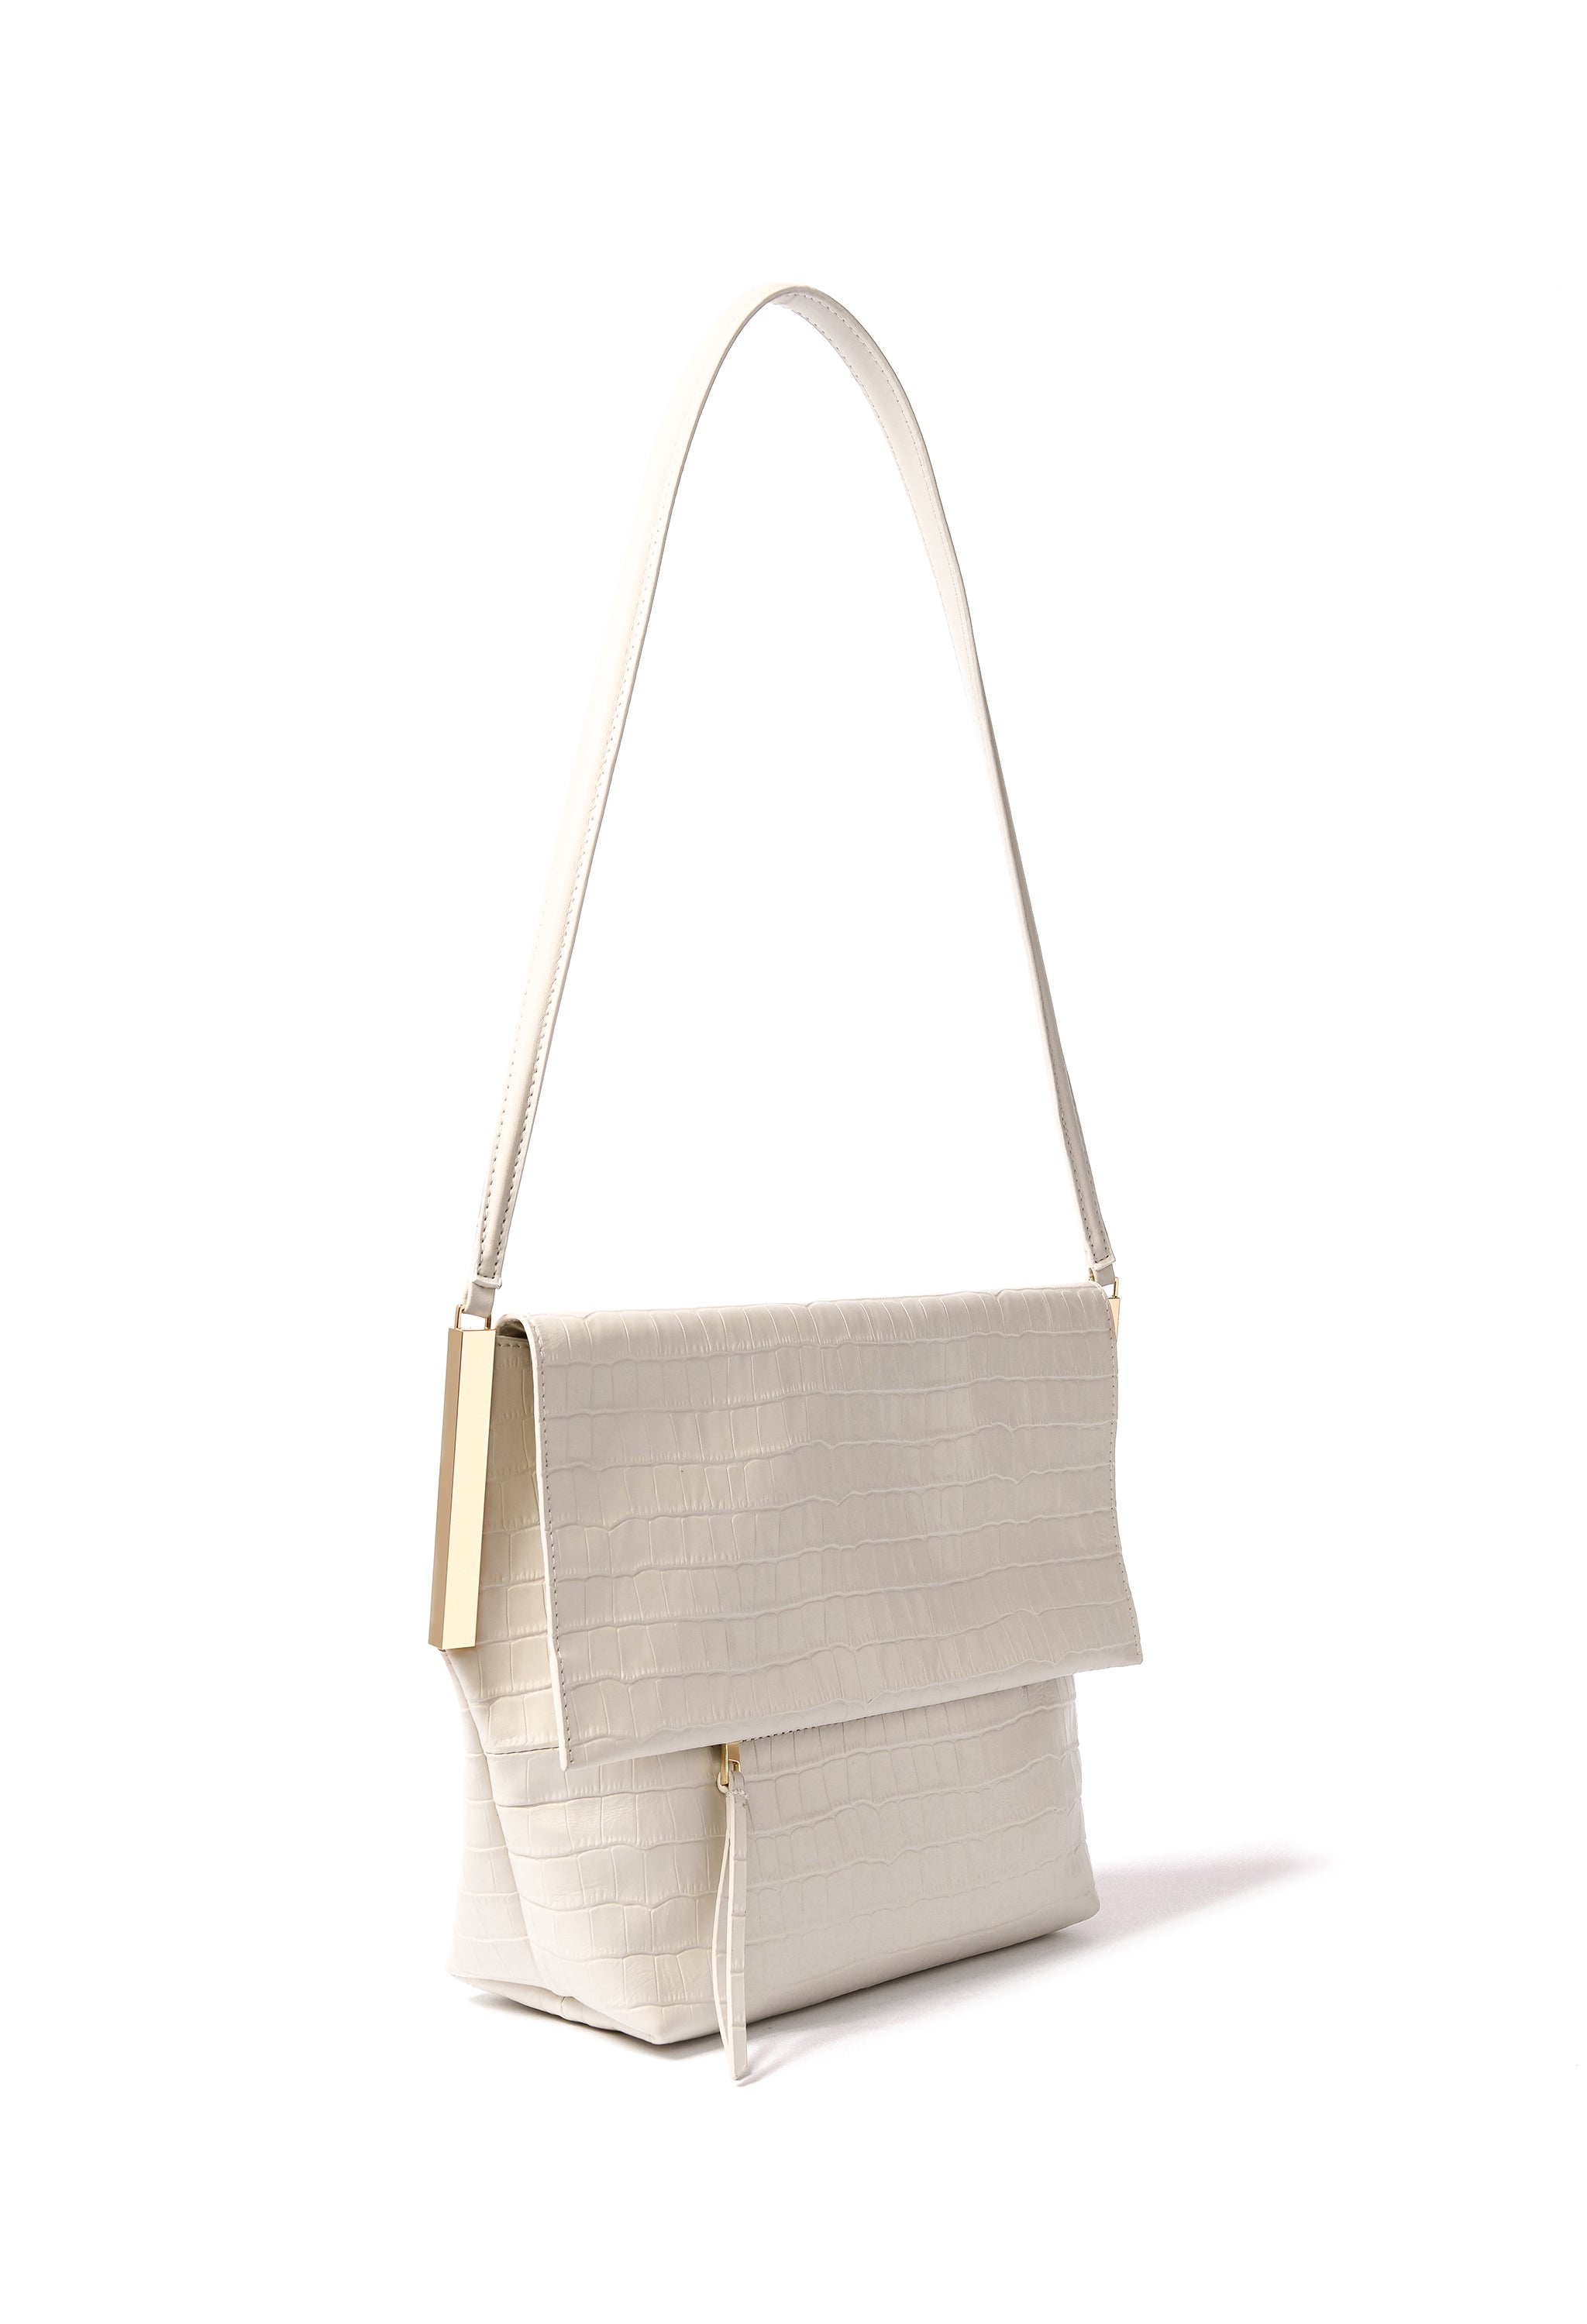 Giselle Bag in croco embossed leather, White